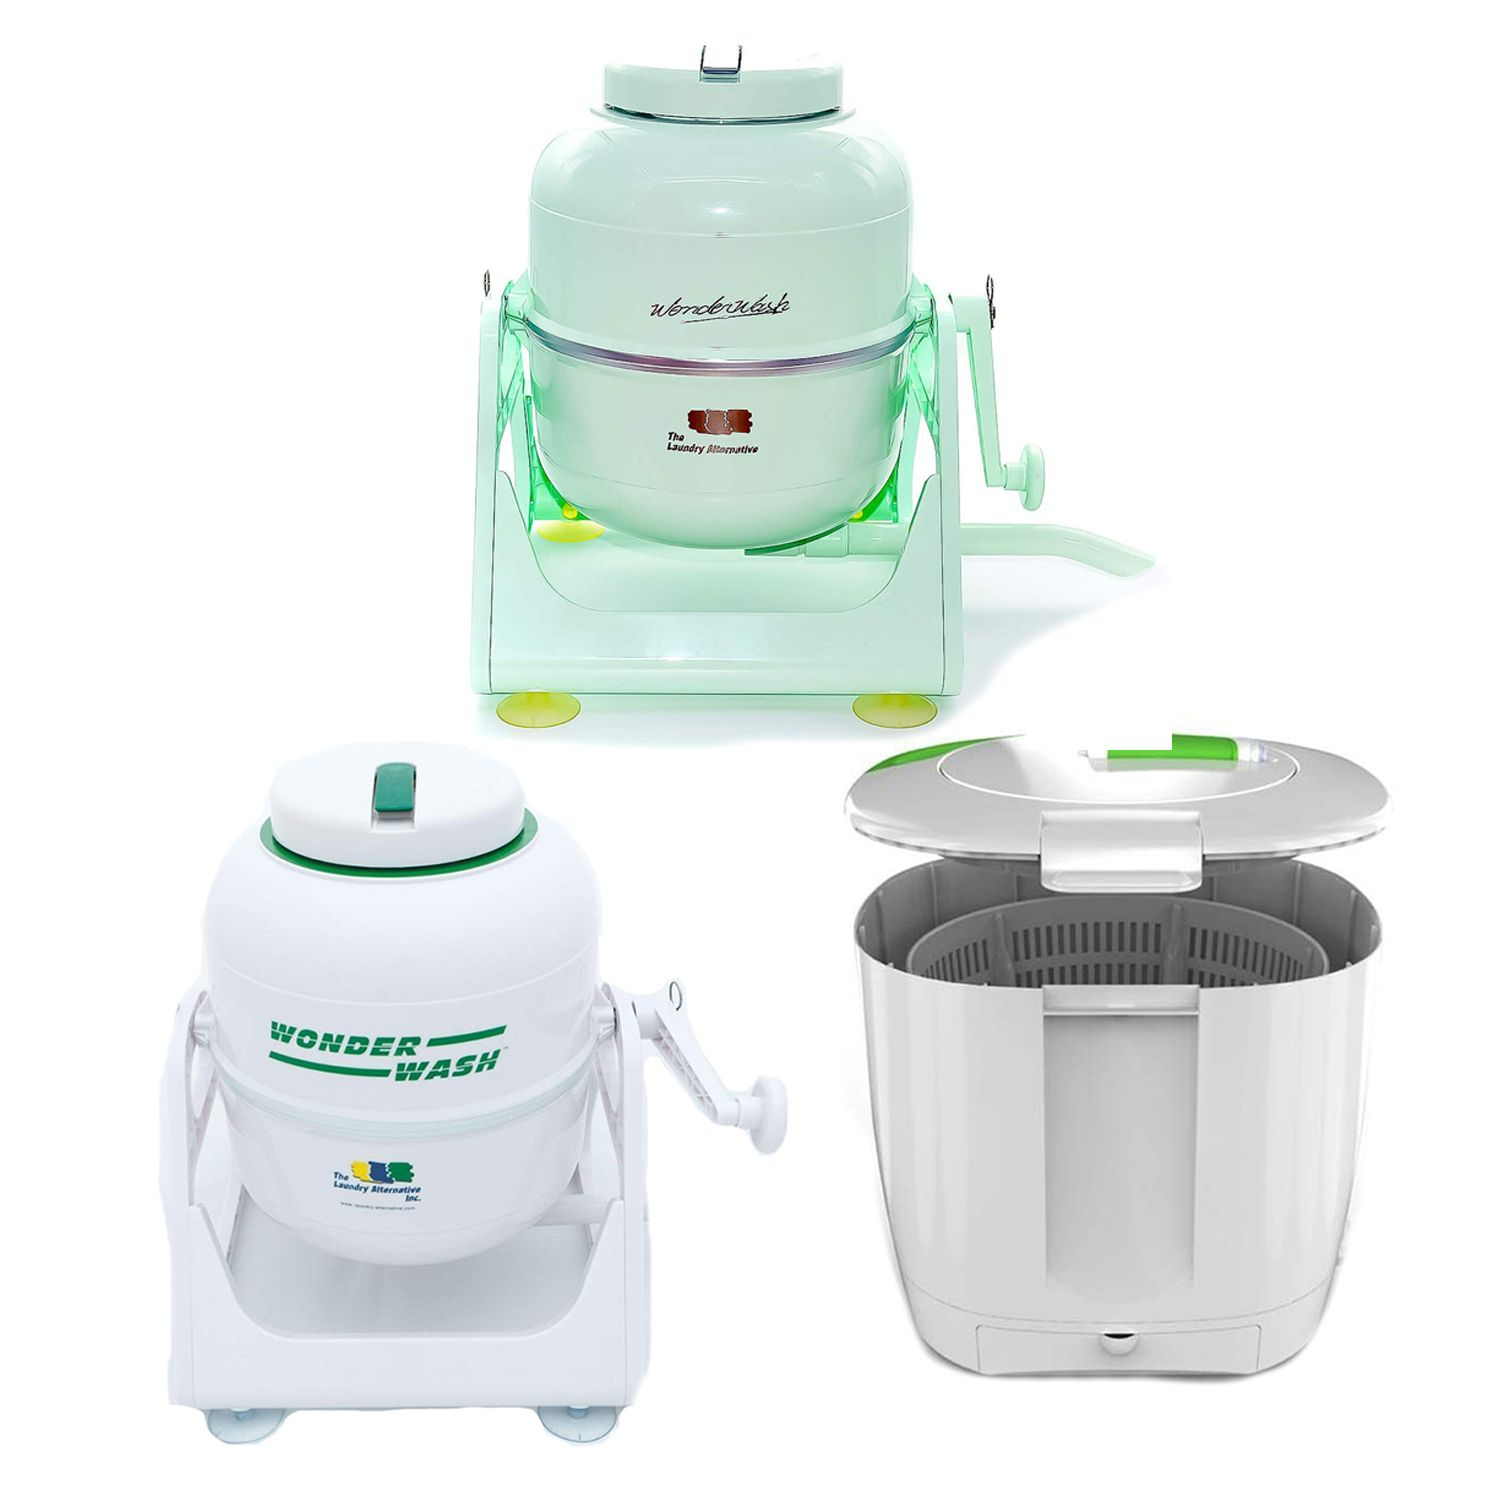 Amazon Shoppers Love Portable Laundry Machines For Small Spaces In